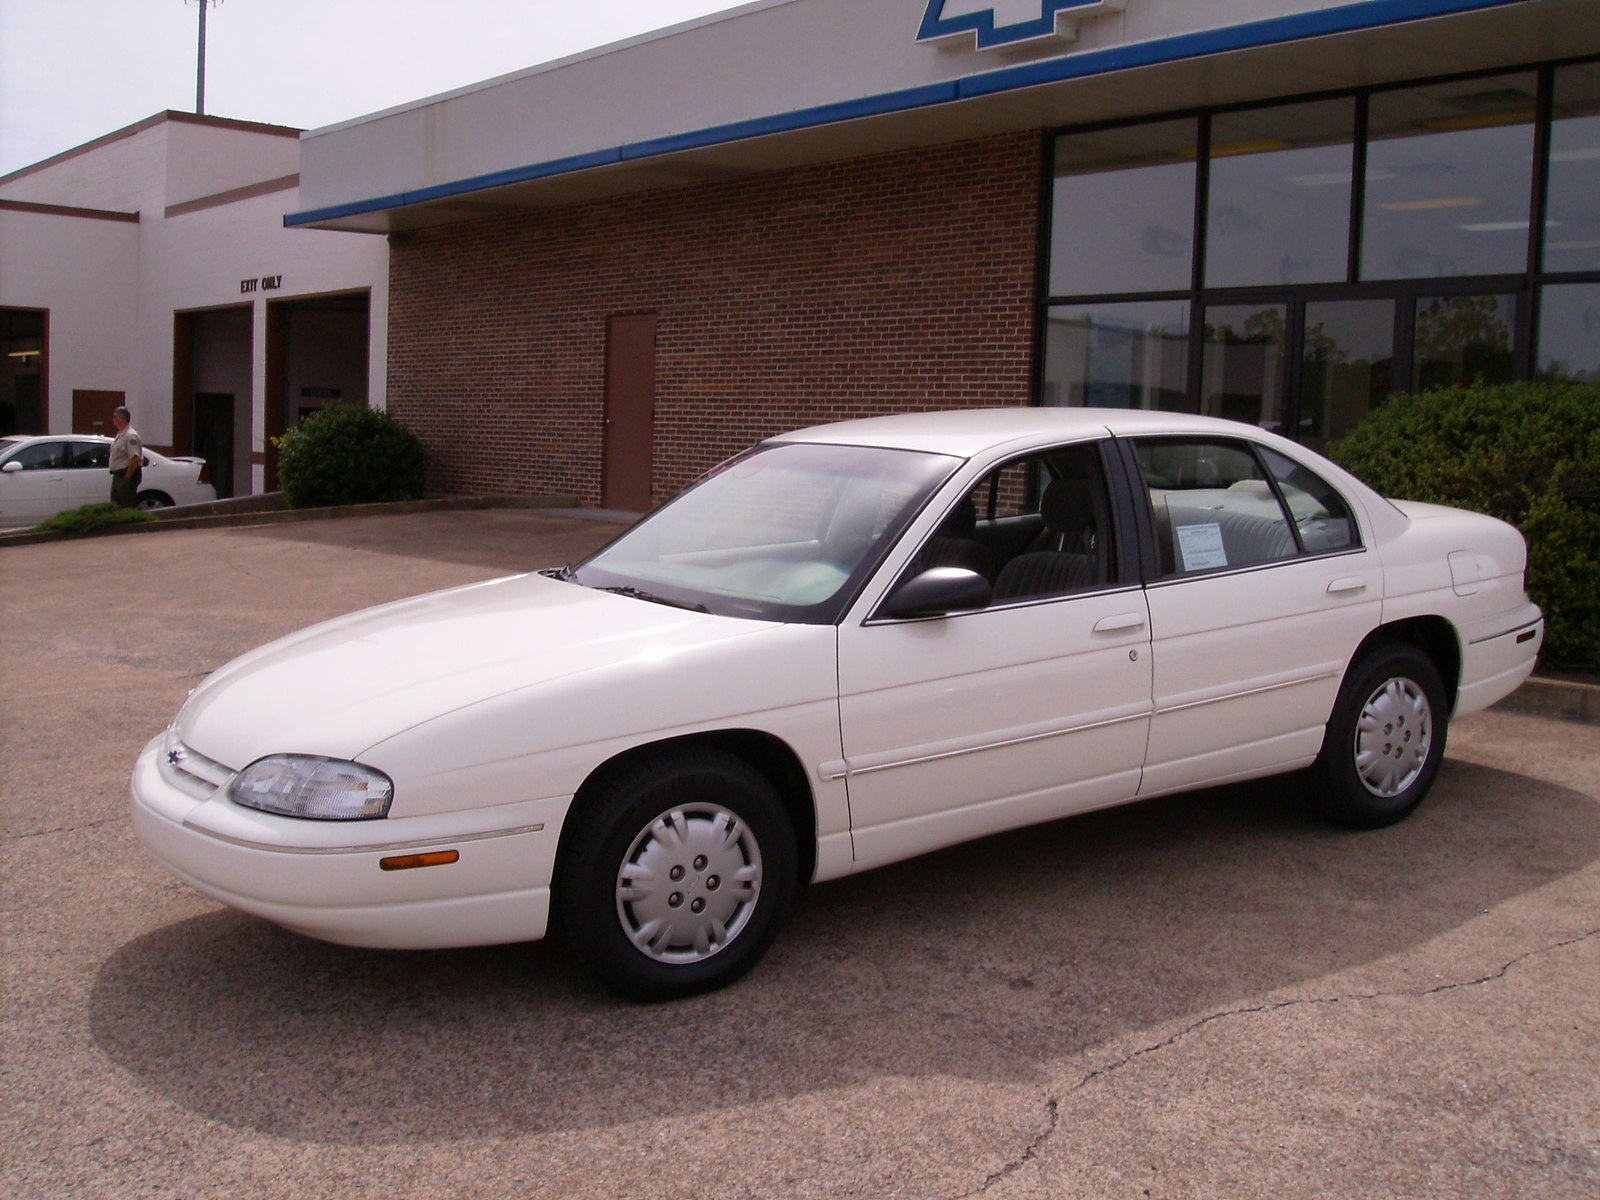 1997 Chevrolet Lumina 4 Dr LS Sedan picture